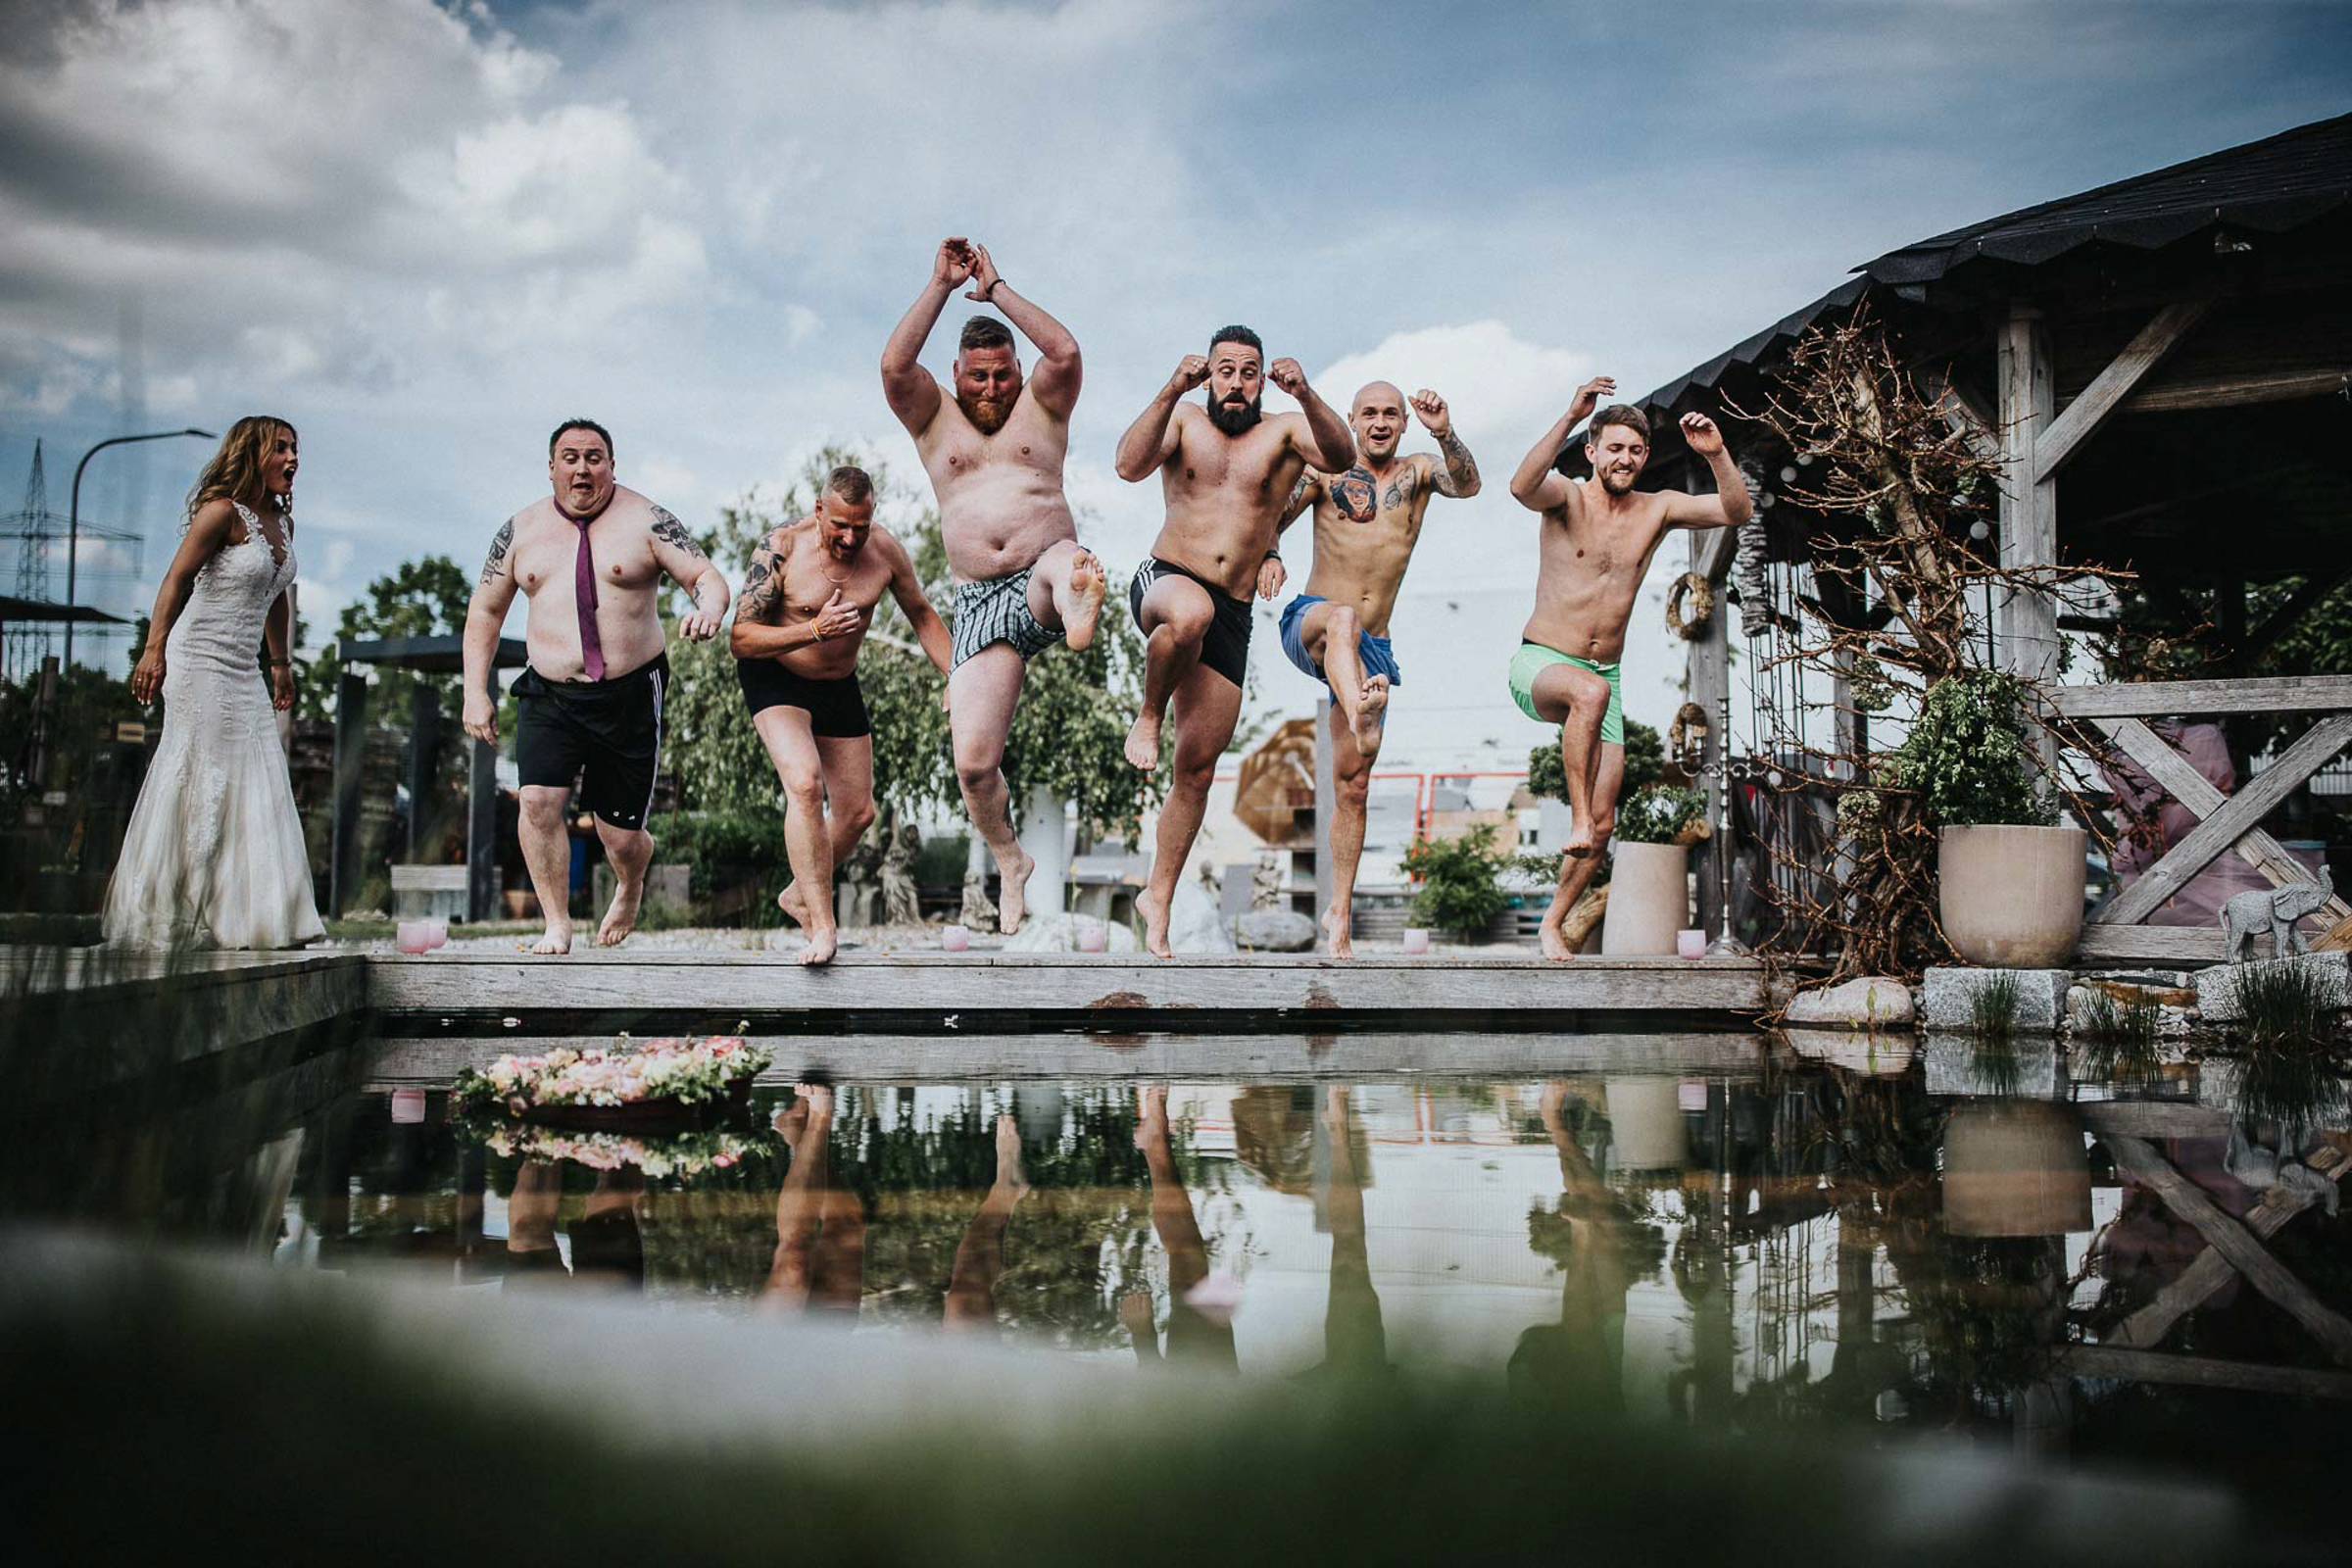 Groomsmen jump into pool next to bride - photo by FineArt Weddings - Germany